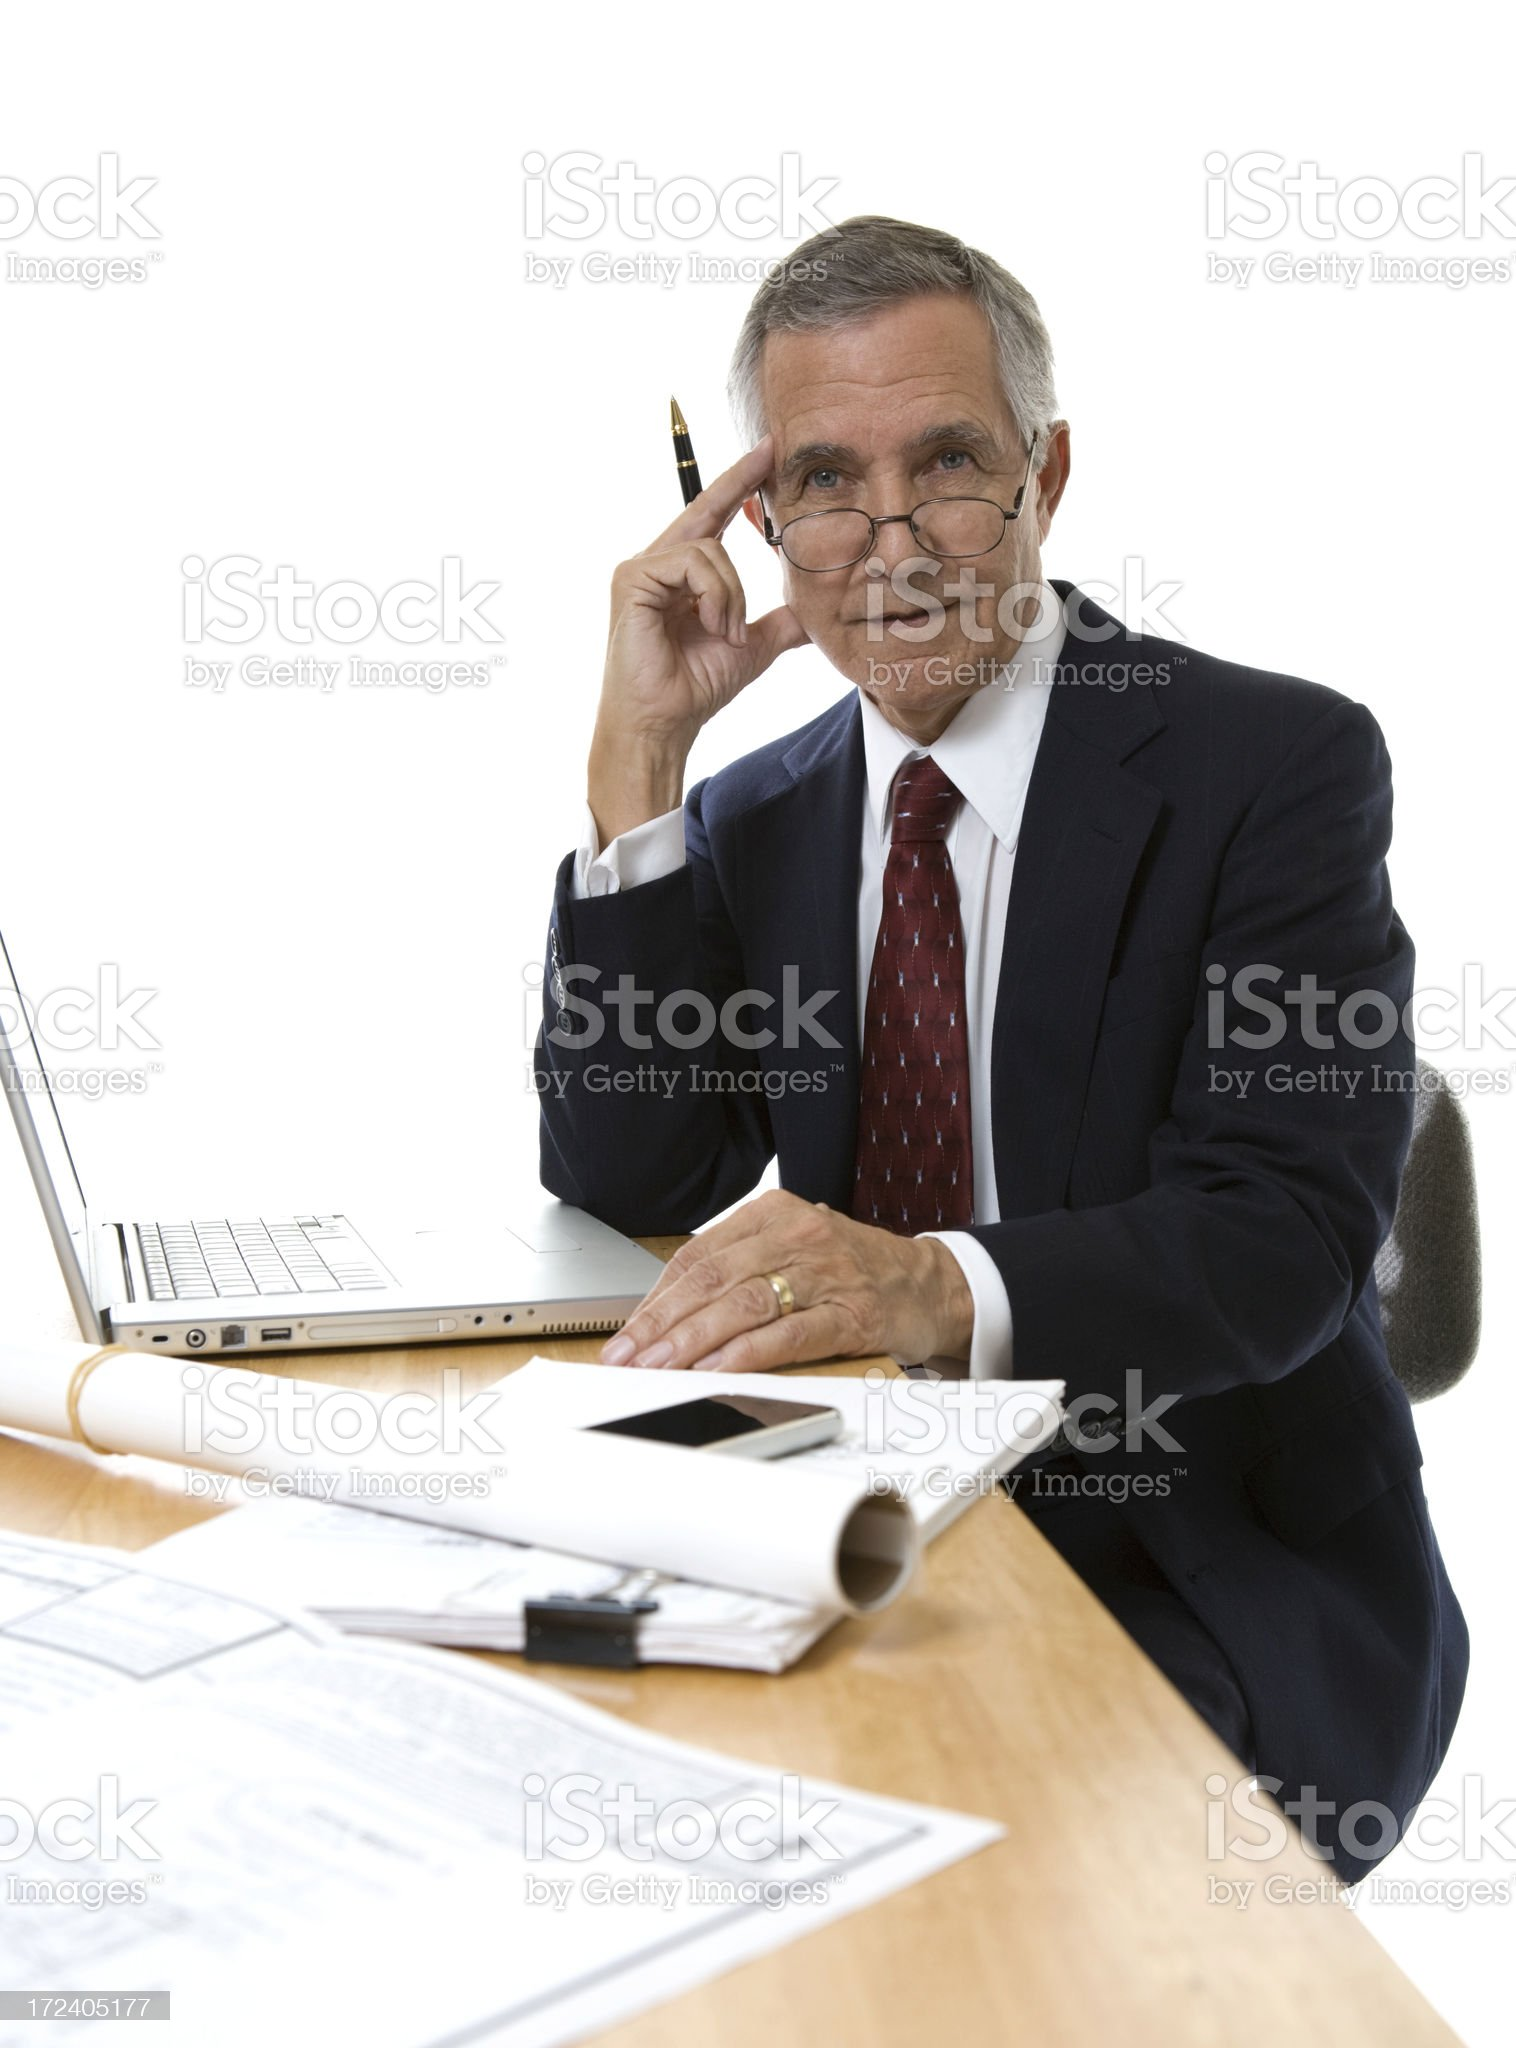 Senior businessman wearing glasses sitting at desk with papers royalty-free stock photo